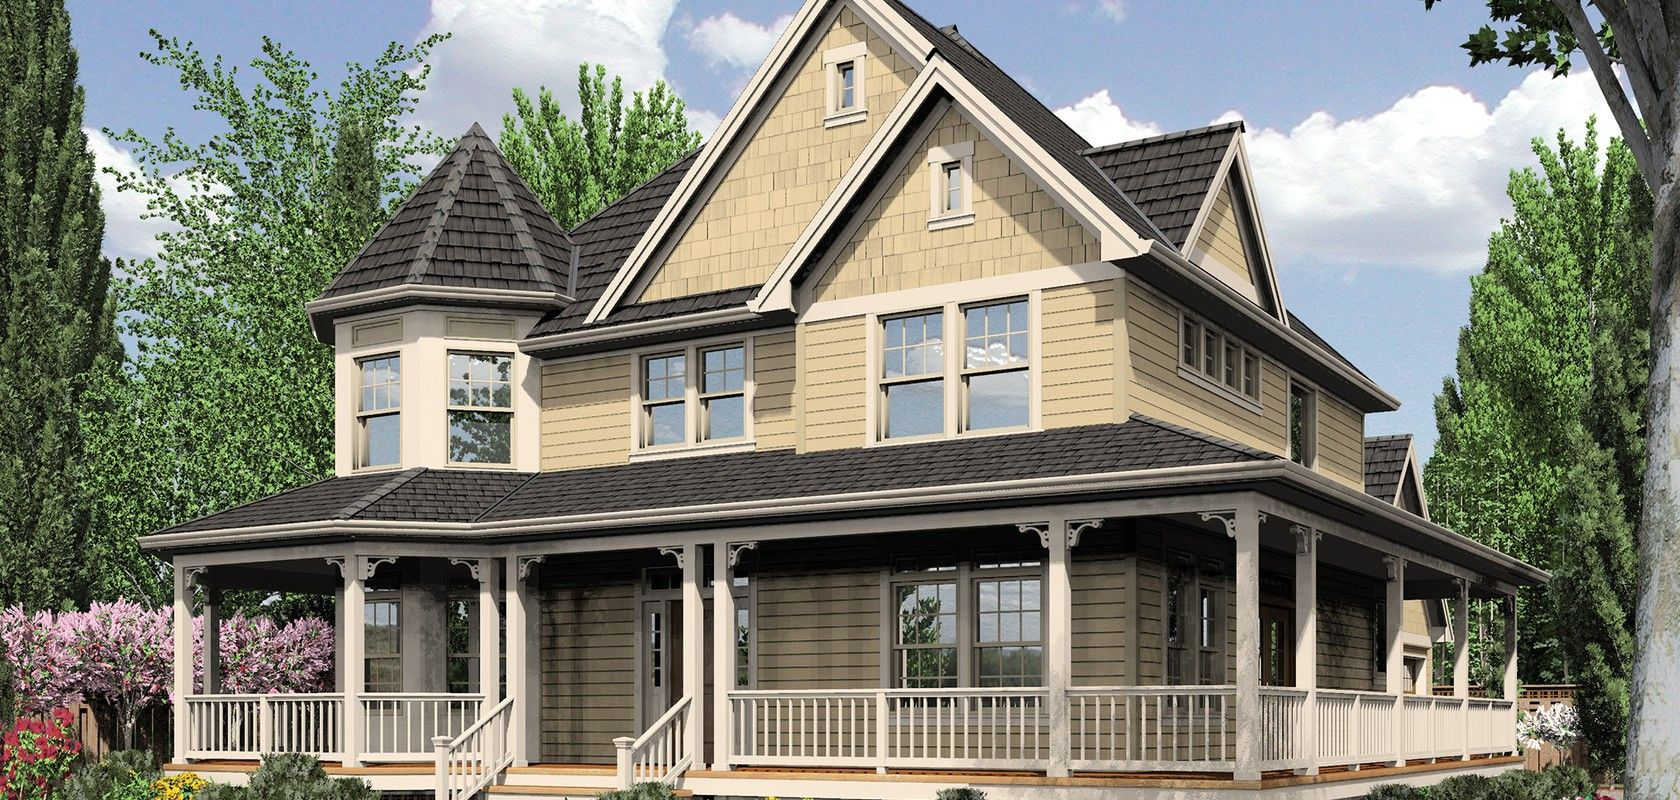 Mascord House Plan 2229A - The Stratford | Victorian house ...